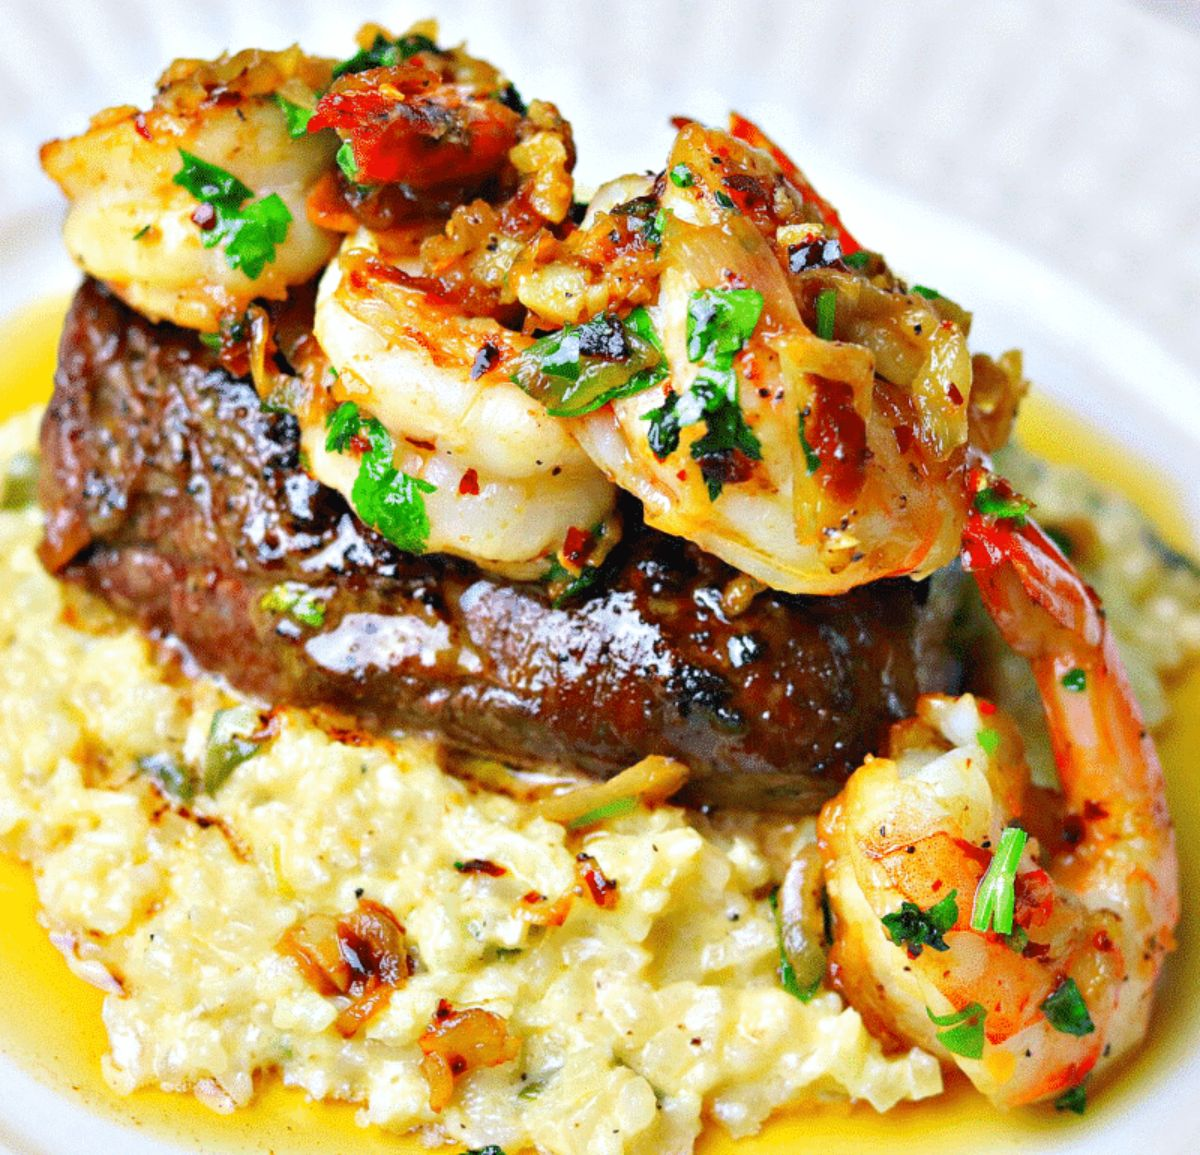 A close up of a pile of rice, steak and shrimp topped with a chilli and herb sauce